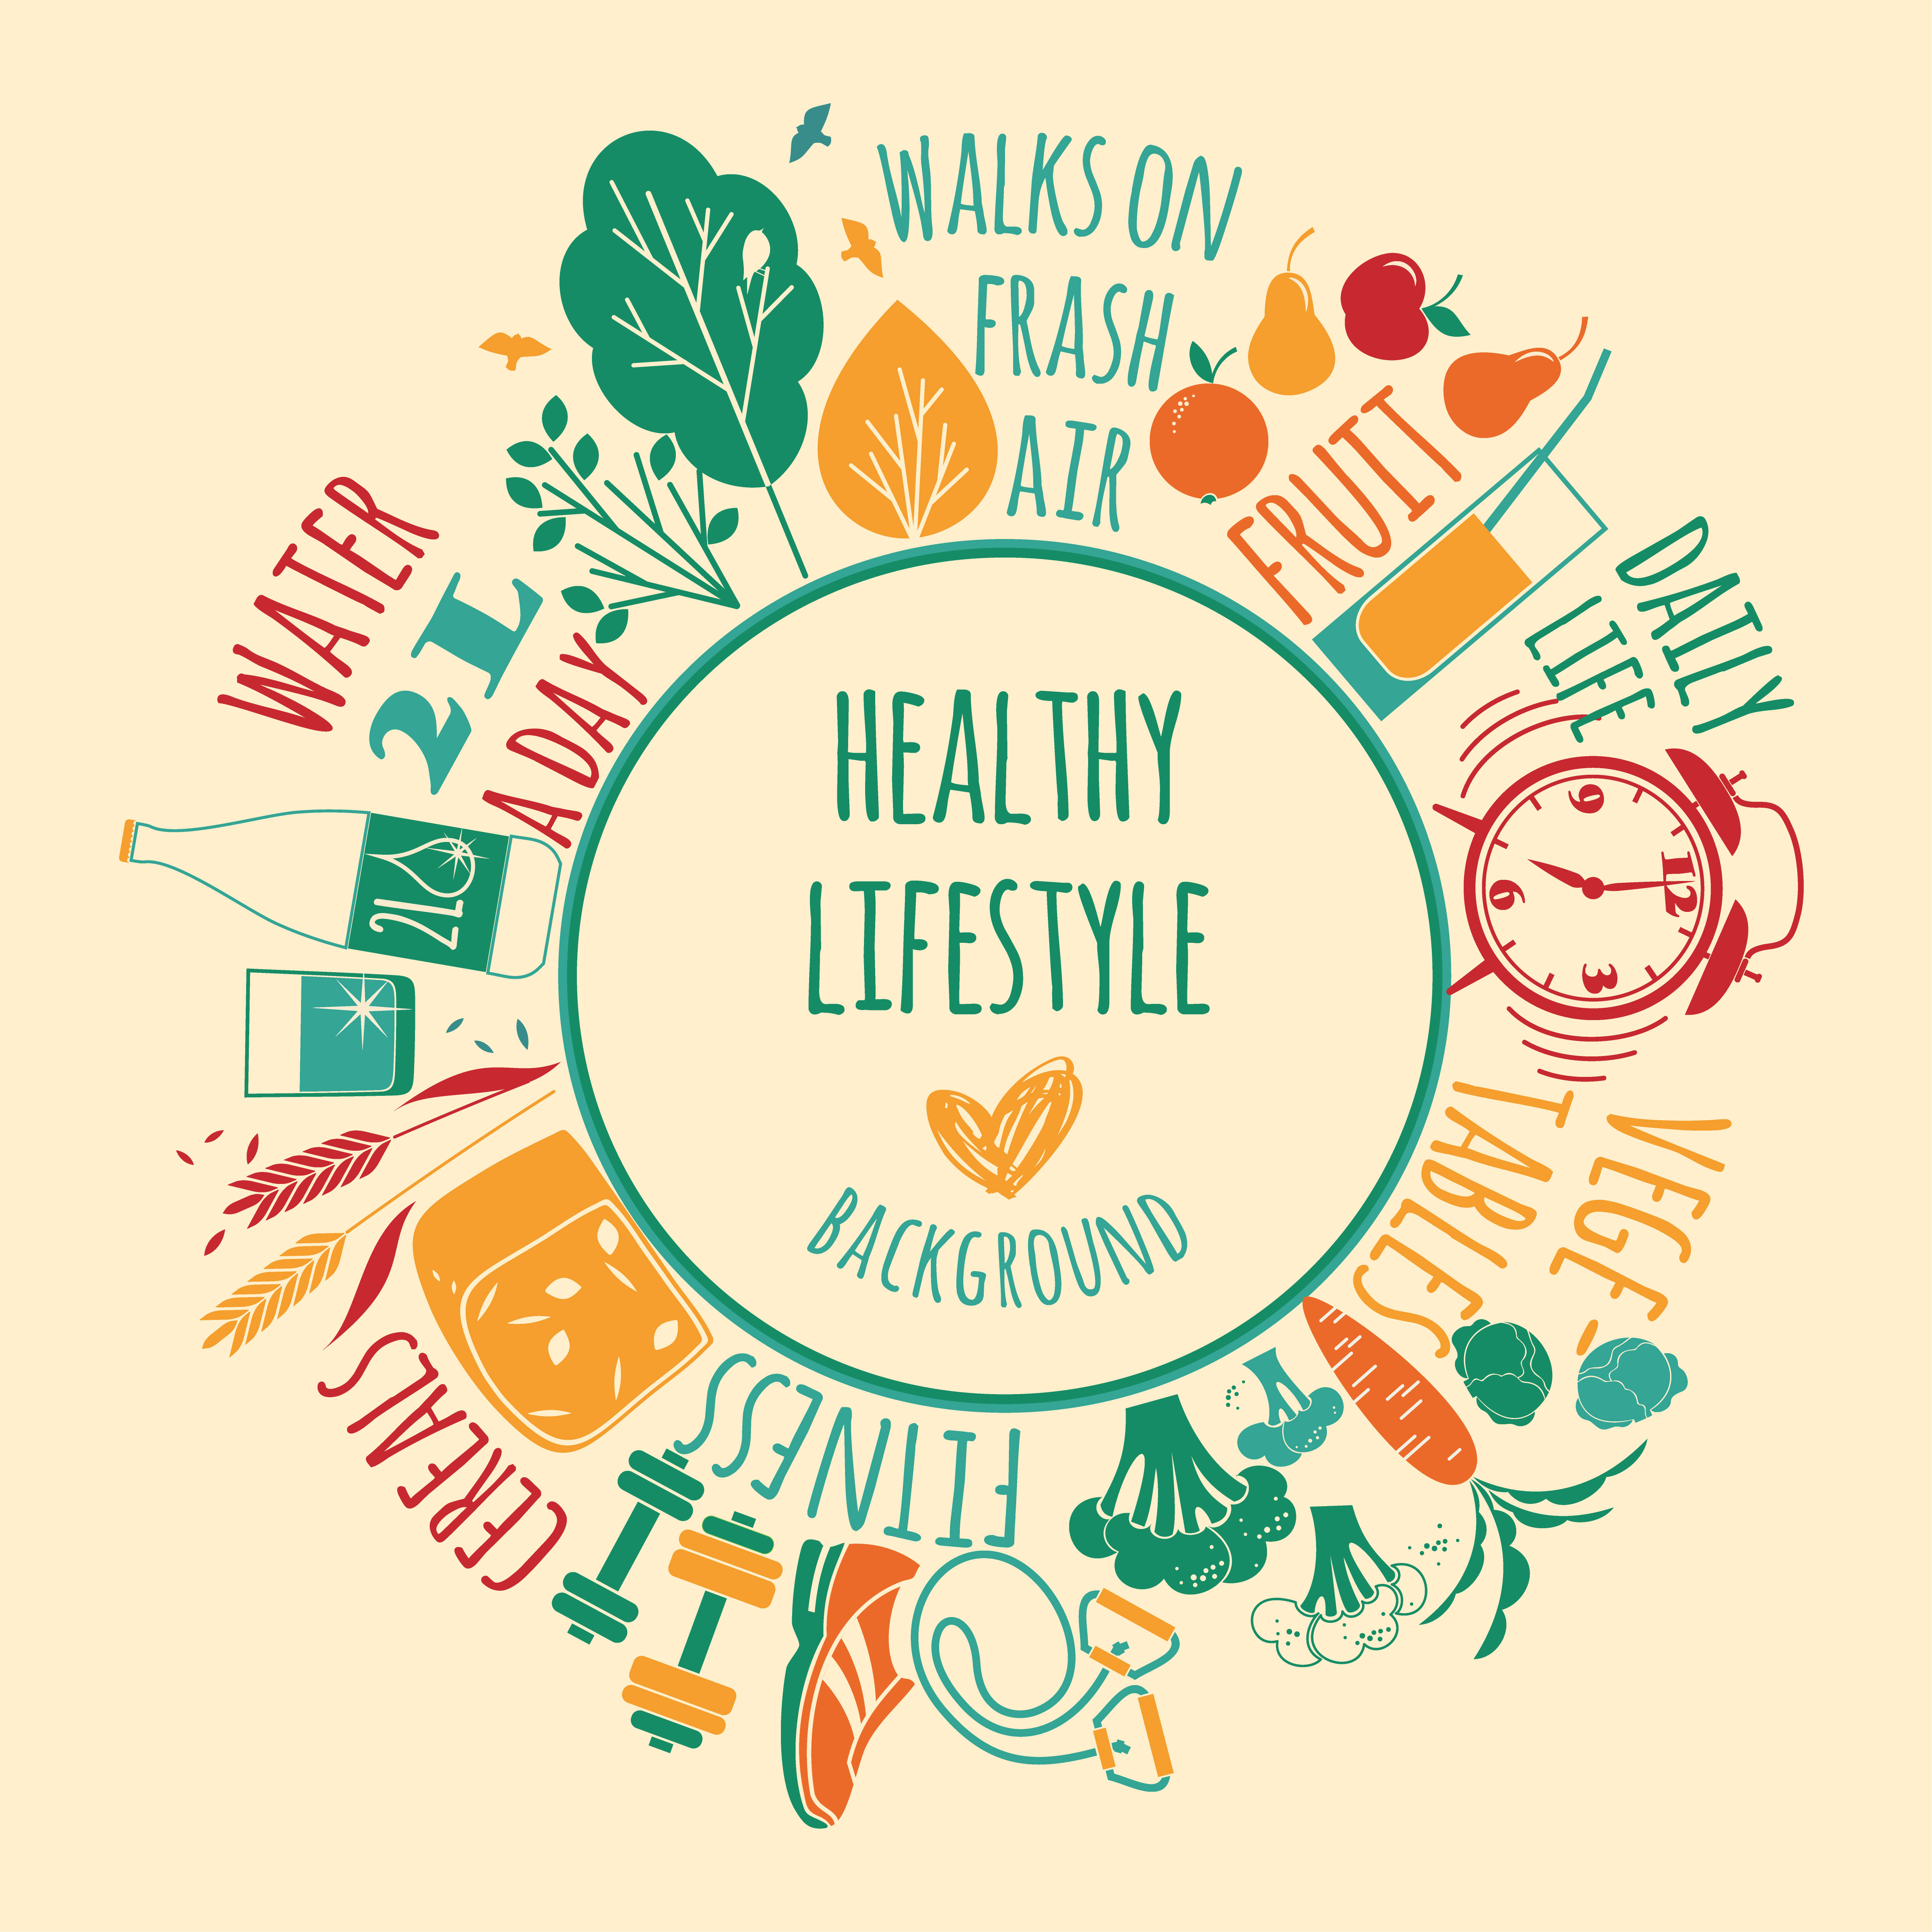 Lifestyle: Vector Illustration Of Healthy Lifestyle.